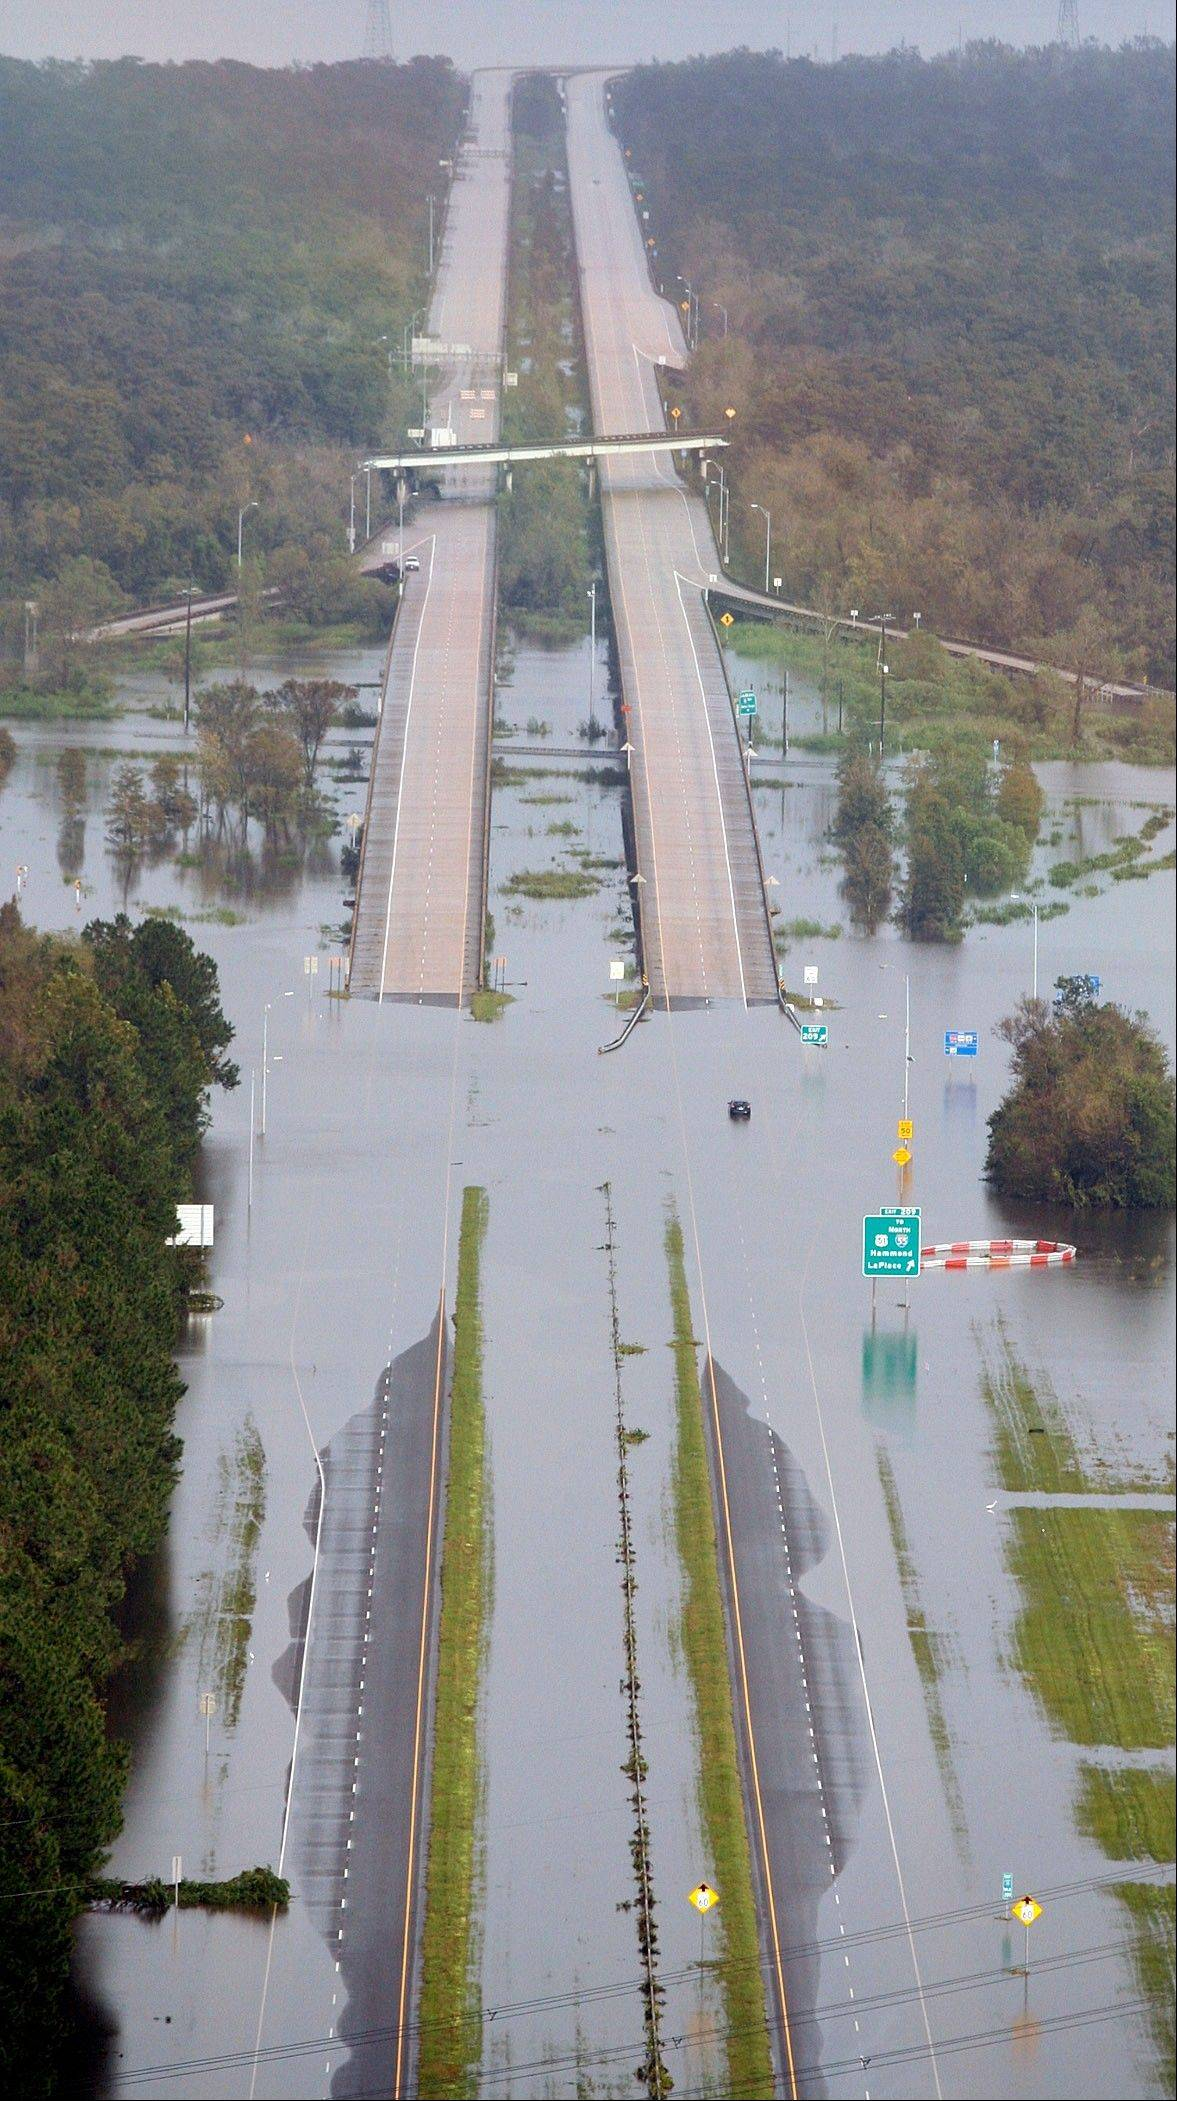 Interstate 10 in LaPlace, La. at the approach of the Twelve Mile Bridge is underwater because of Hurricane Isaac Thursday, August 30, 2012. Isaac soaked Louisiana for yet another day and pushed more water into neighborhoods all around the city, flooding homes and forcing last-minute evacuations and rescues. New Orleans itself was spared, thanks in large part to a levee system built after Katrina.